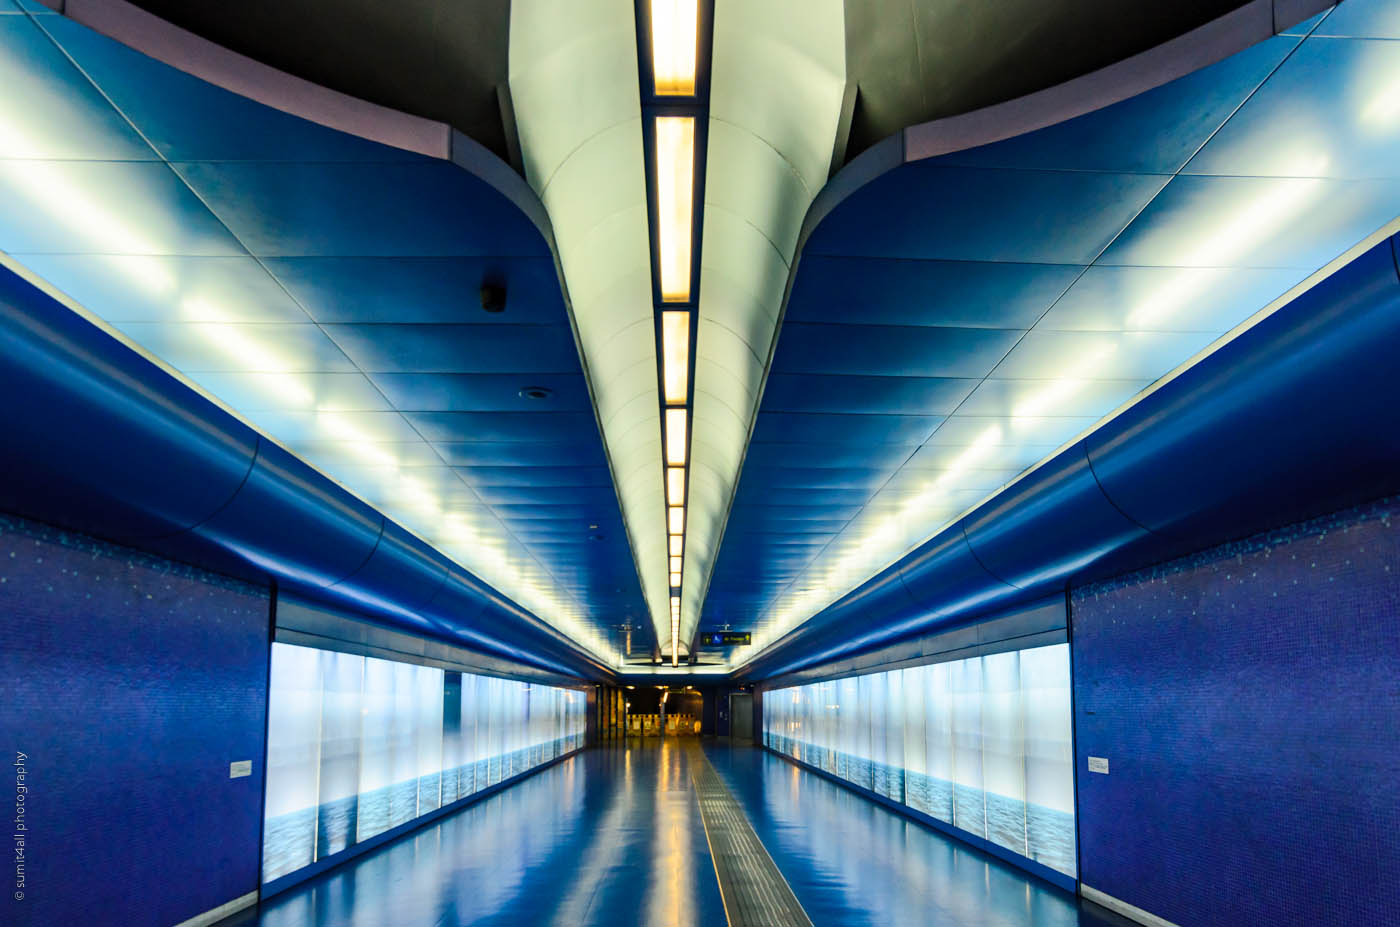 A Shiny Metro Station in Naples